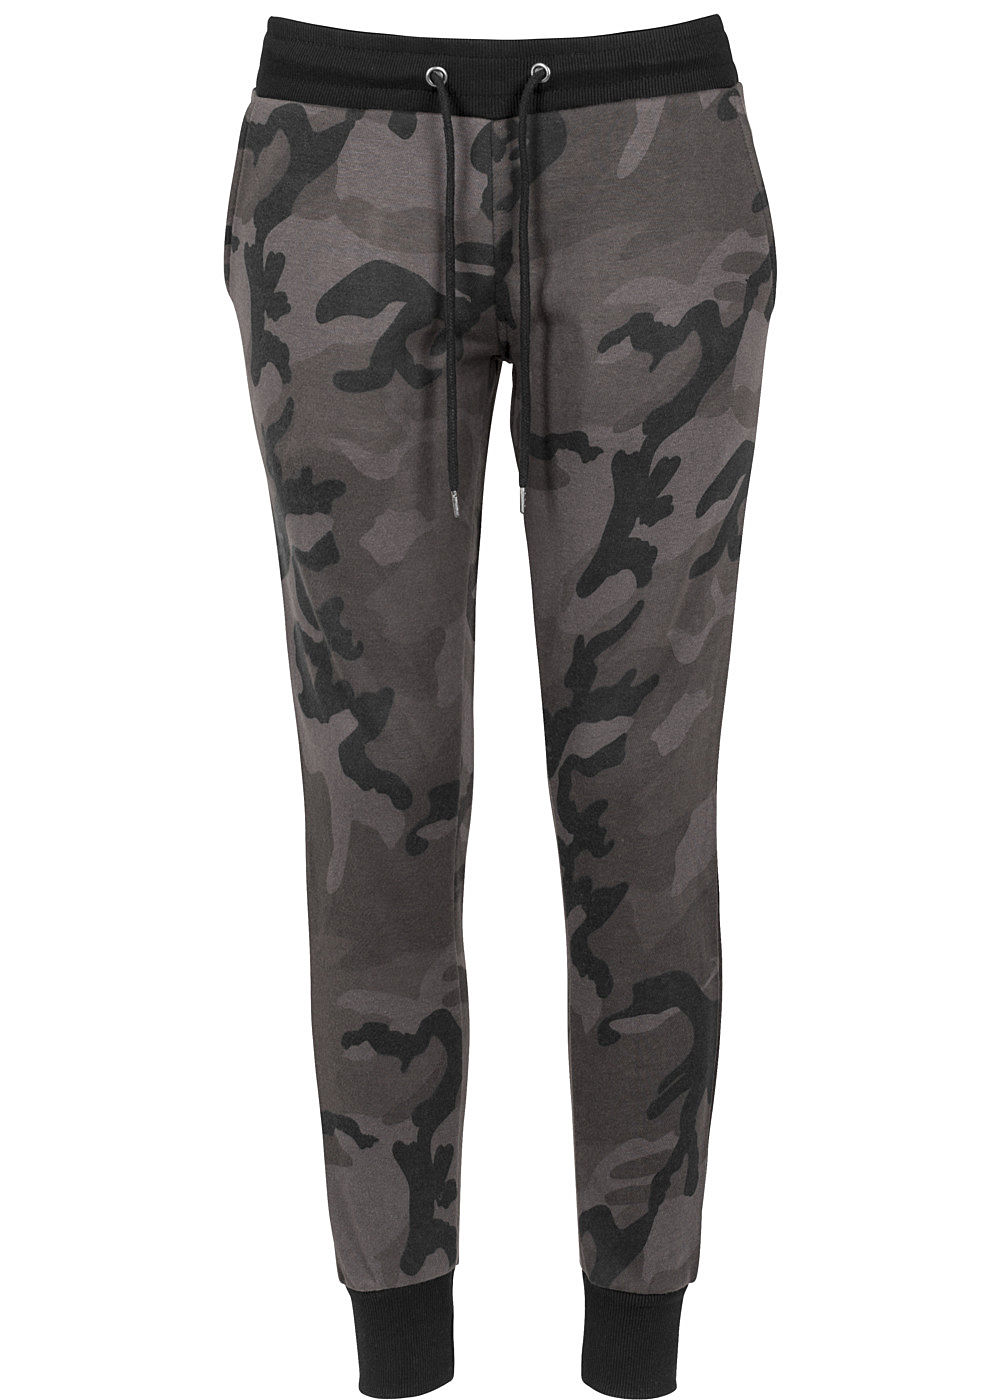 seventyseven lifestyle damen terry jogging pants camouflage design dunkel camouflage 77onlineshop. Black Bedroom Furniture Sets. Home Design Ideas